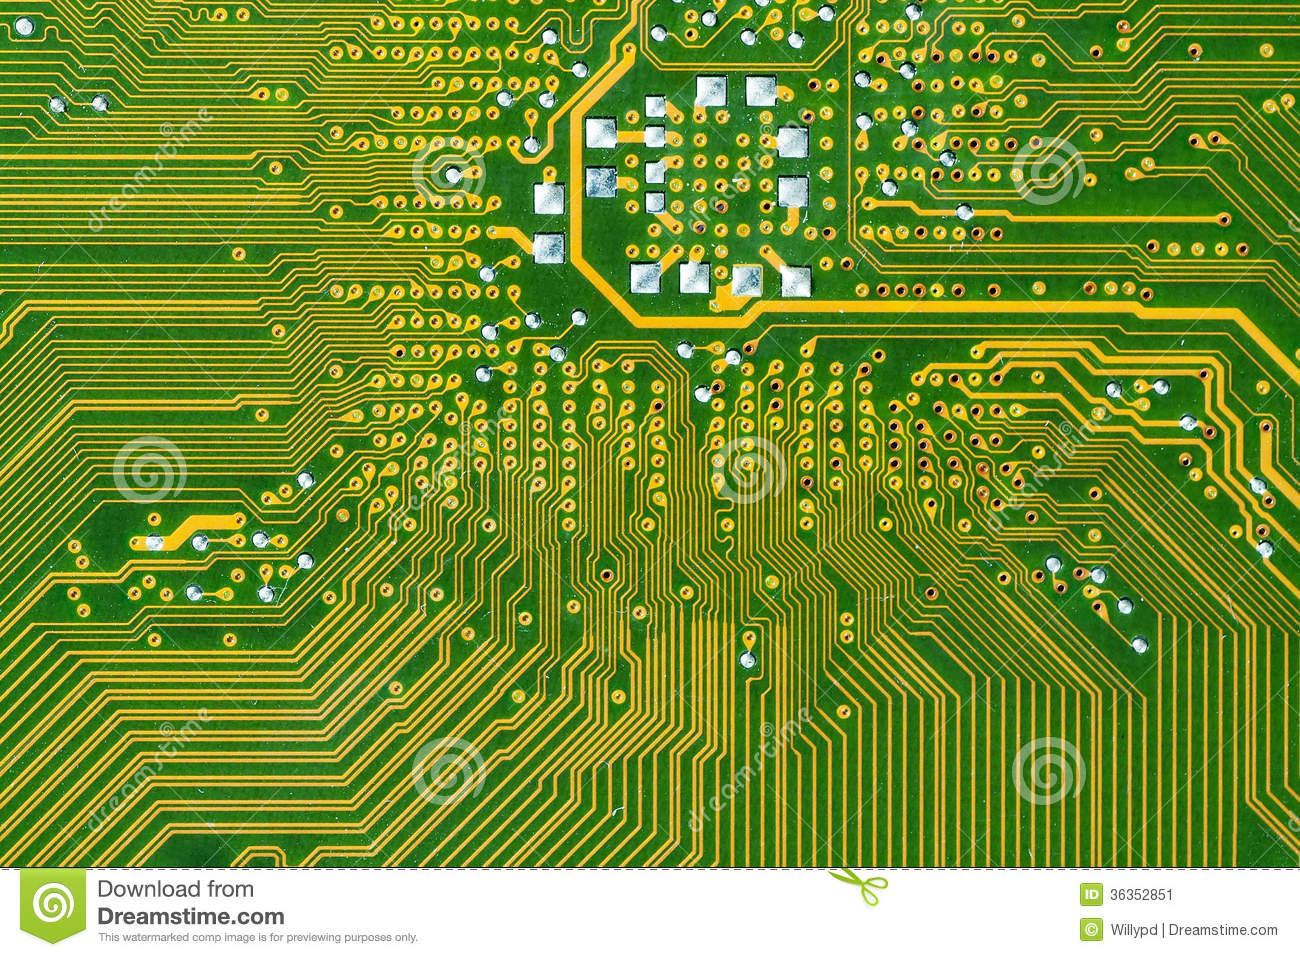 electronic circuit diagrams computer program pcb motherboard stock image image of microprocessor